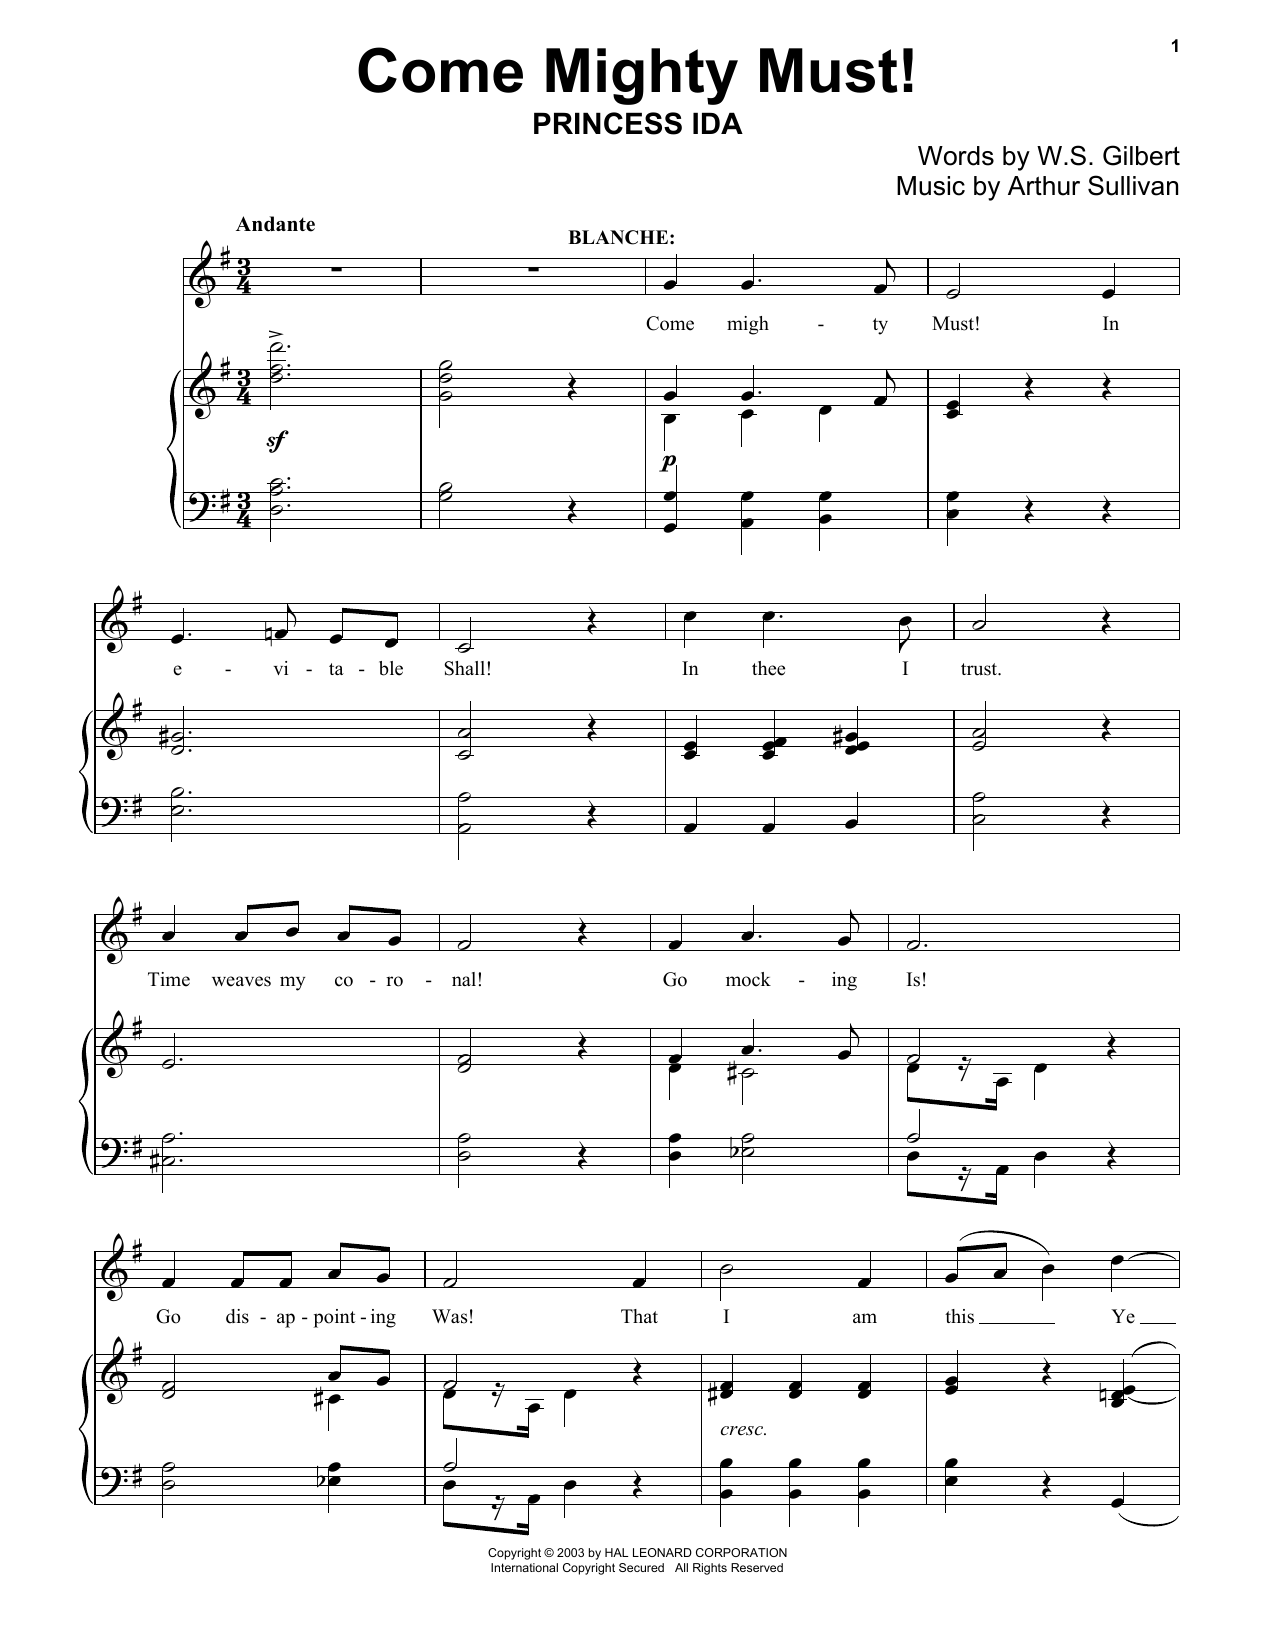 Come Mighty Must! Sheet Music